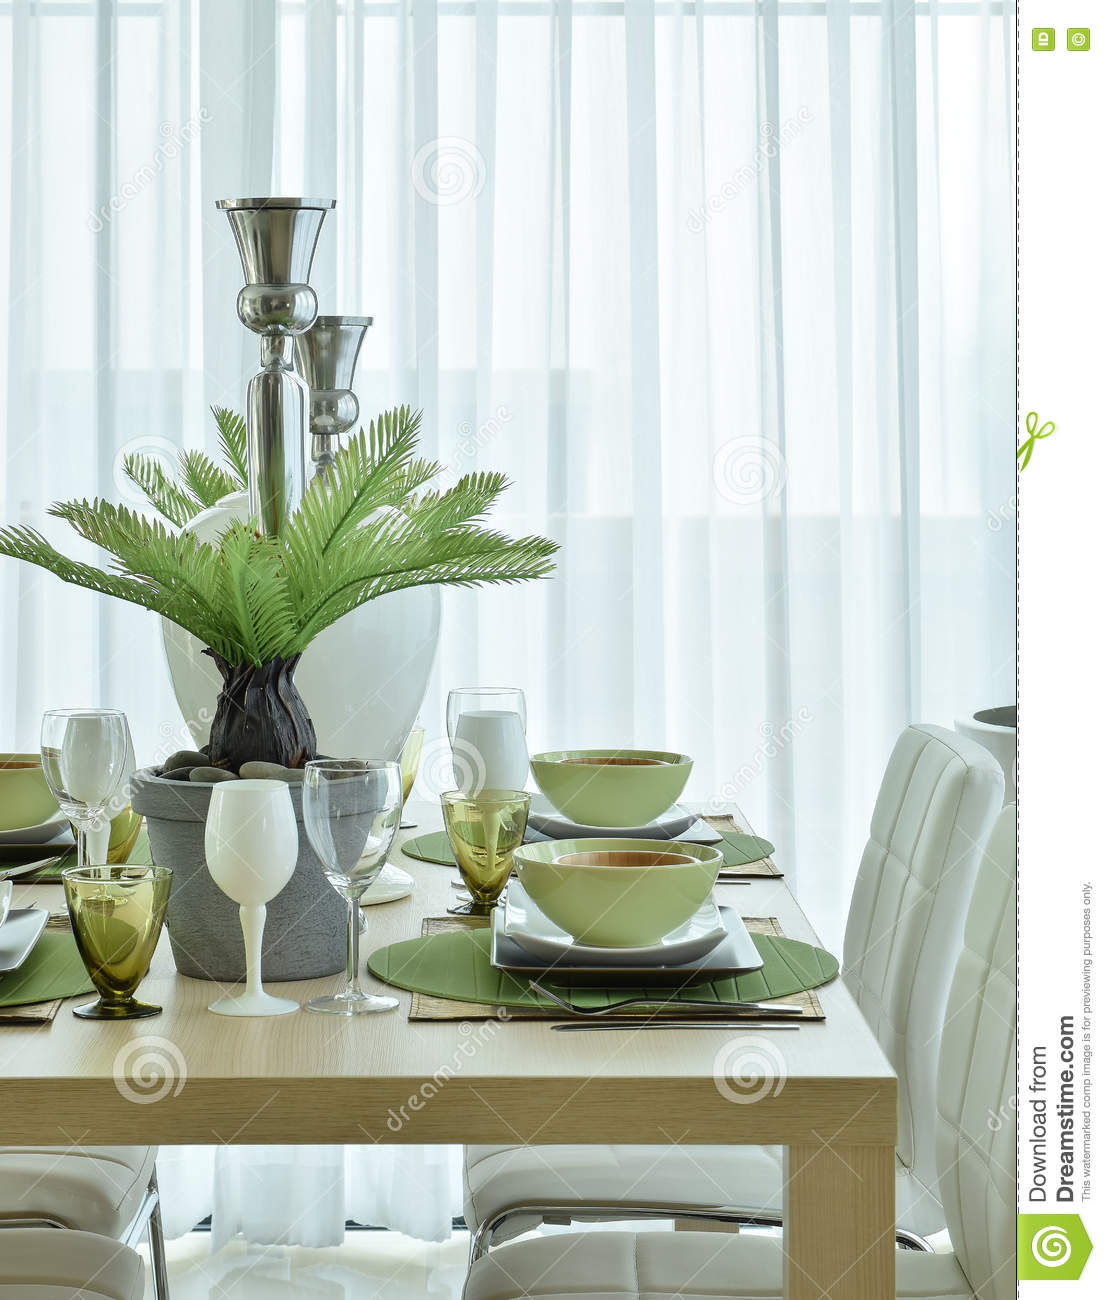 Modern Ceramic Tableware In Green Color Scheme Setting On Dining Table